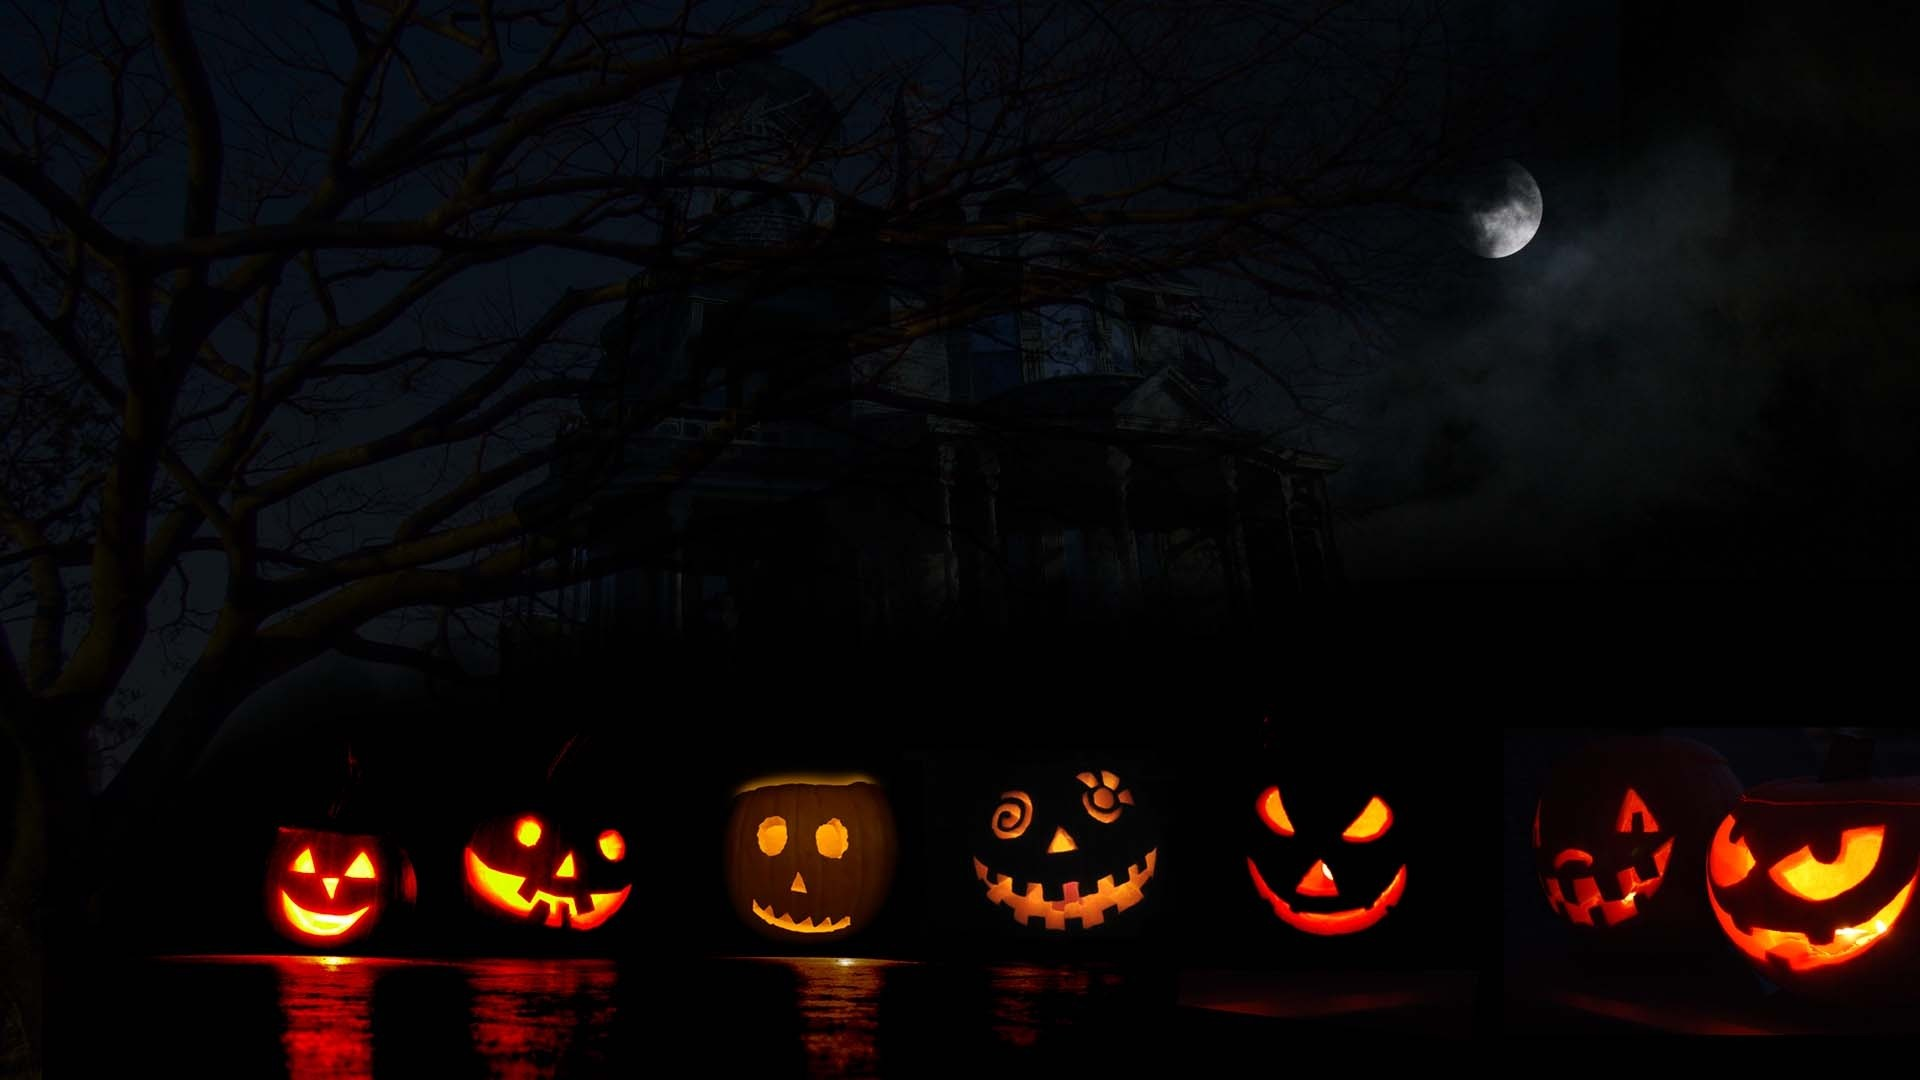 Halloween Wallpaper for PC 67 images 1920x1080